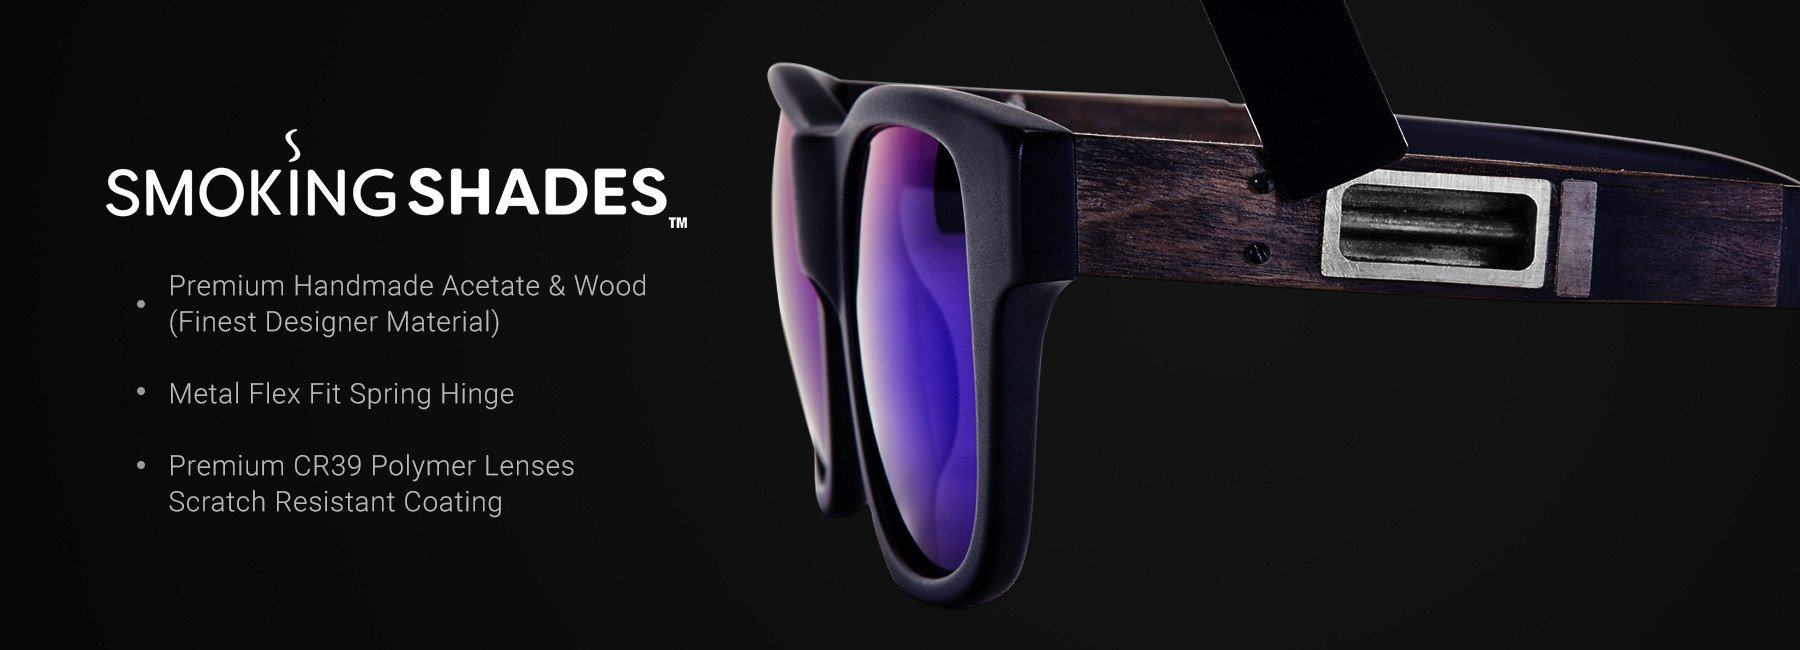 Smoking Shades | The Worlds First Smokable Pipe Sunglasses